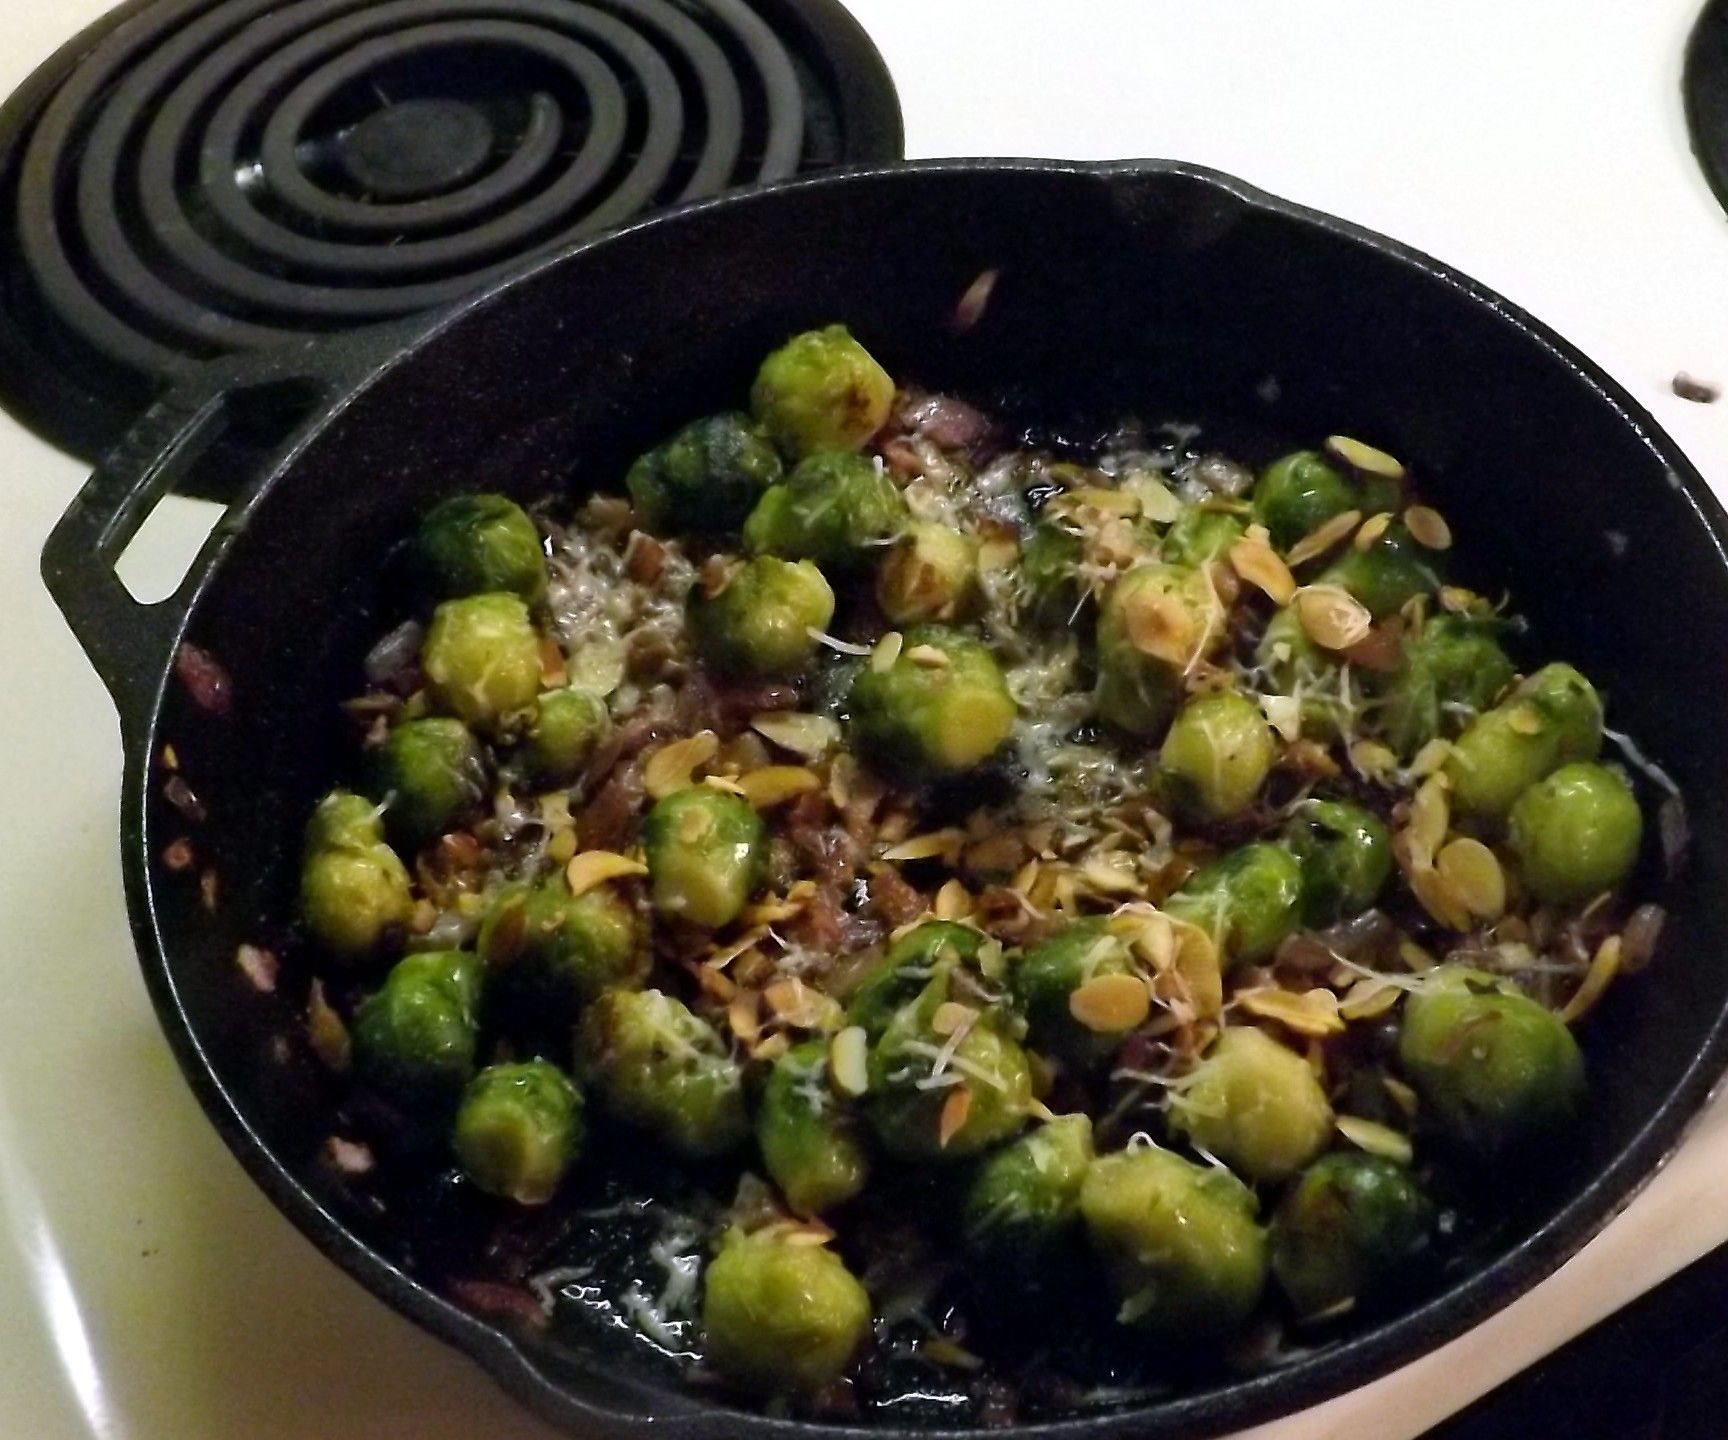 SAUTEED BRUSSELS SPROUTS WITH PARMESAN, PROSCIUTTO, & TOASTED ALMONDS